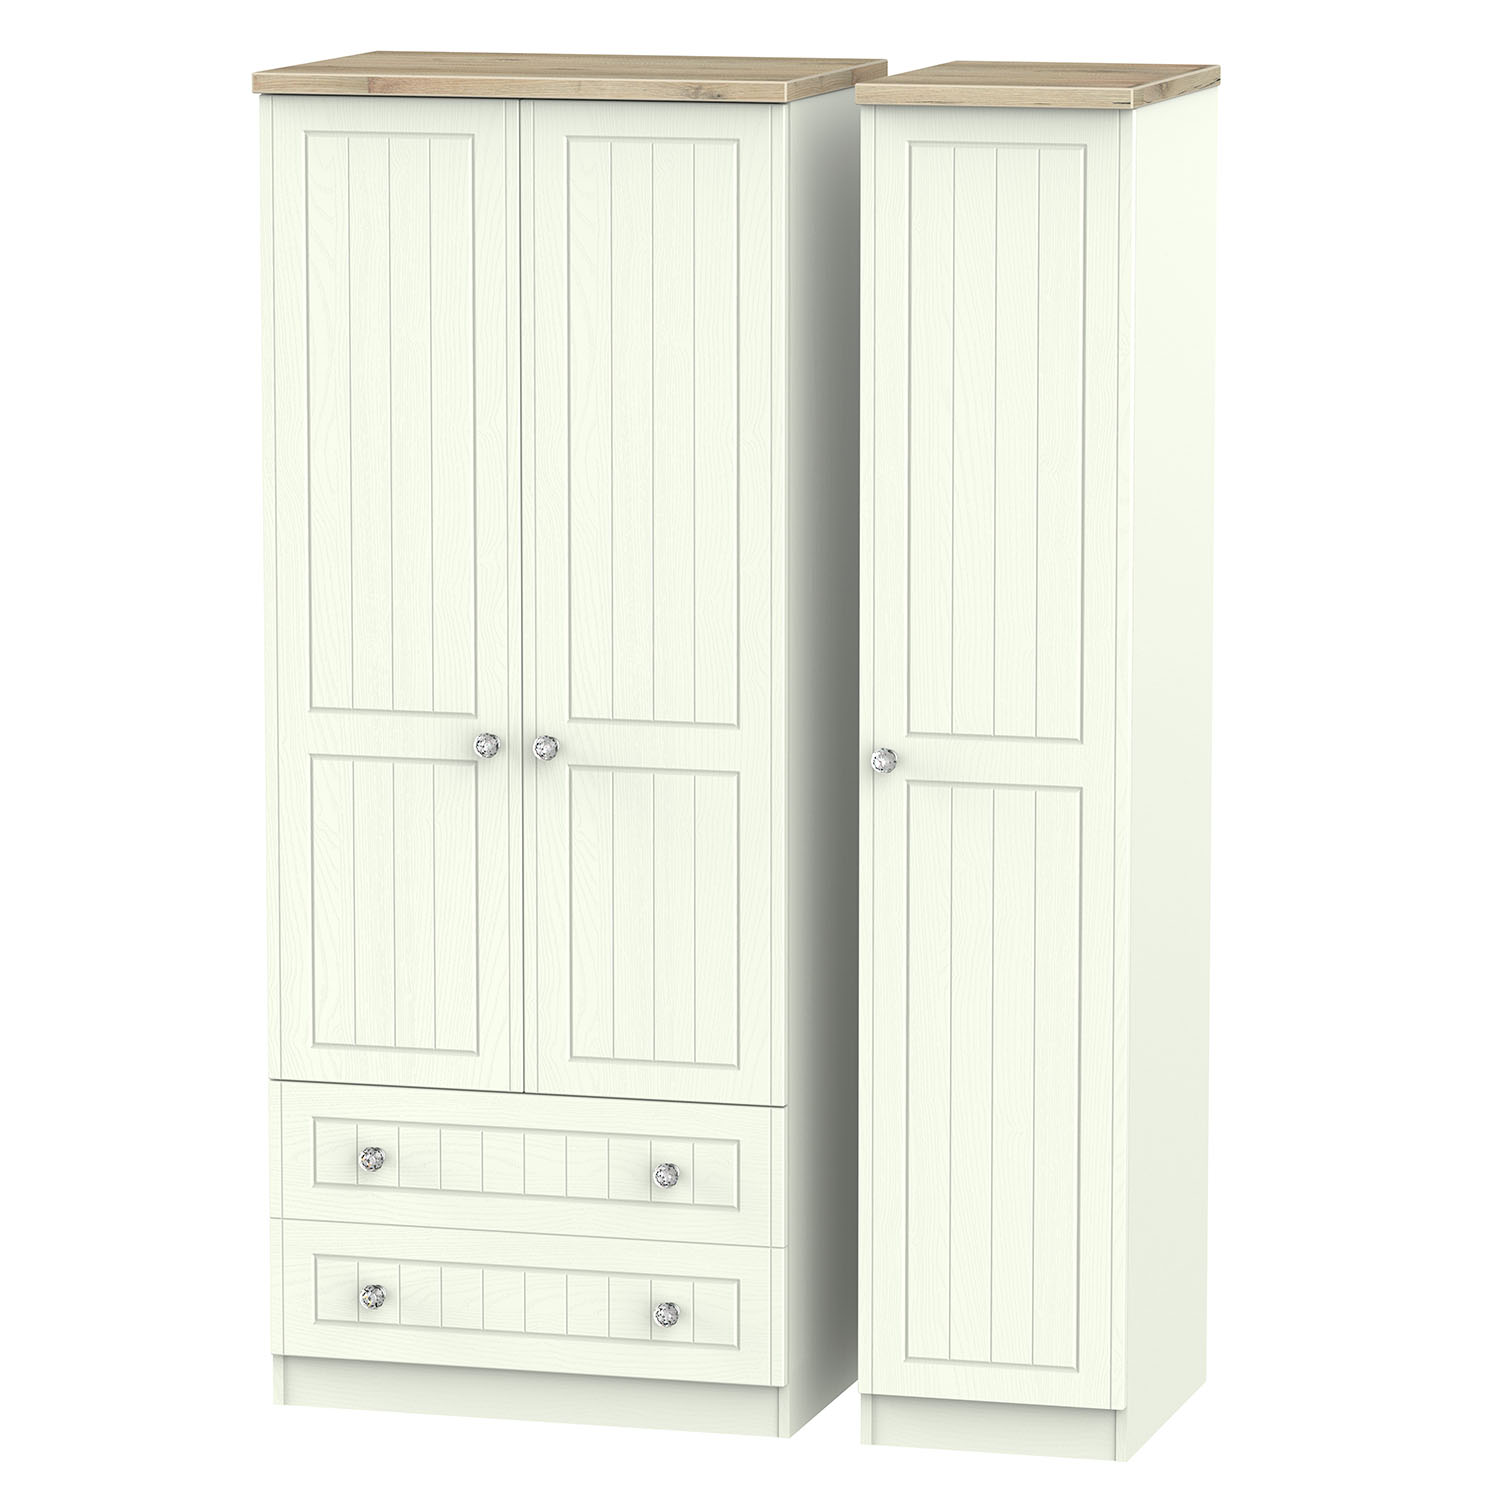 Rome Triple 2 Drawer Robe